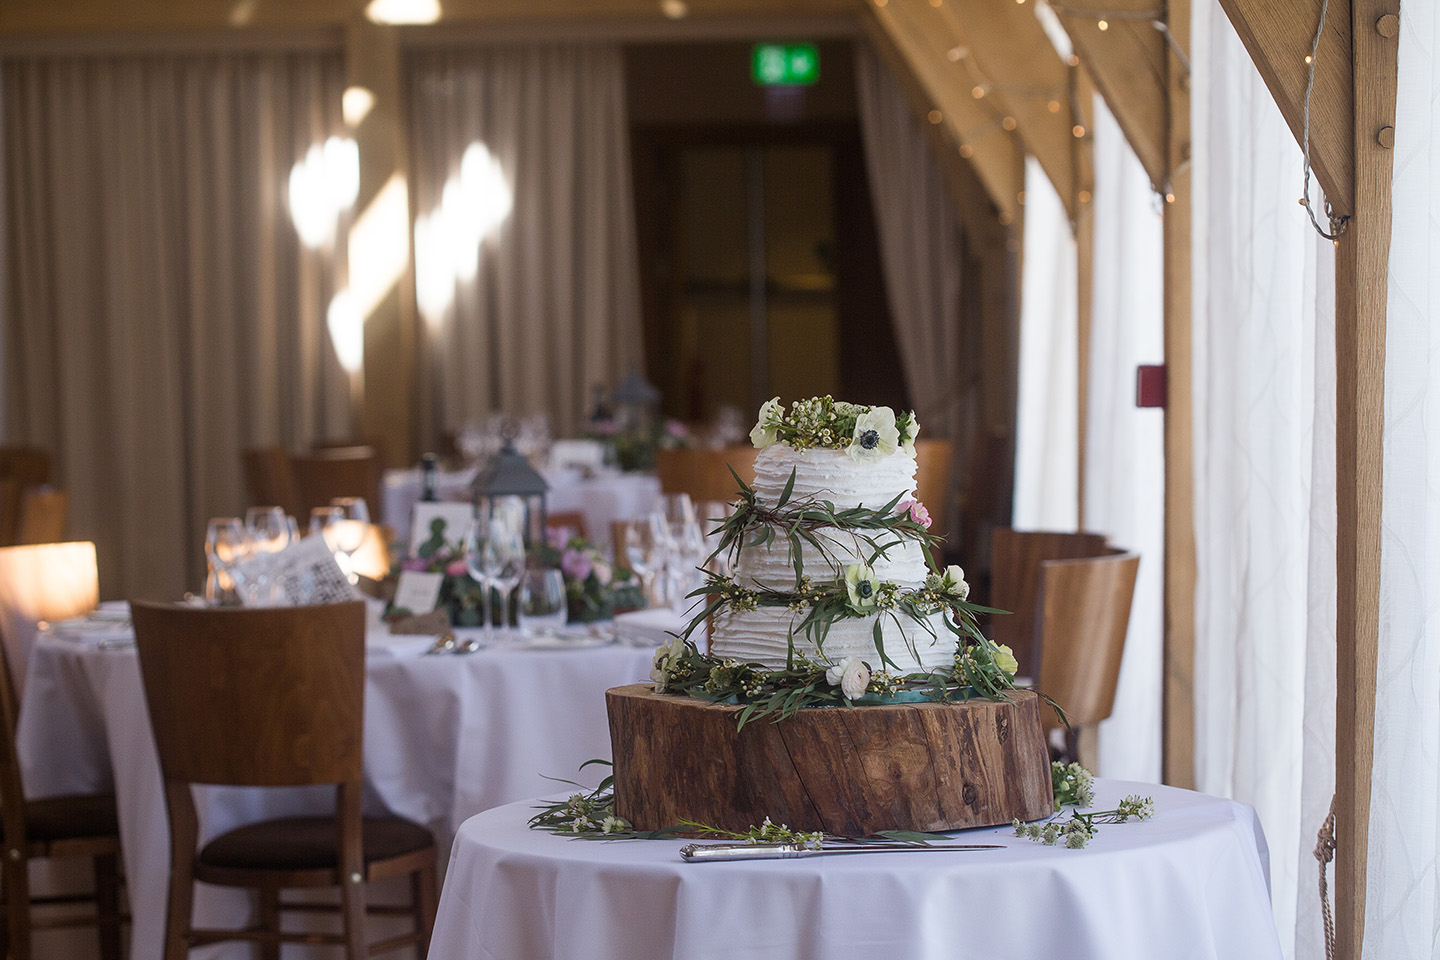 A rustic wedding cake is decorated with foliage and sits on a log slice for a spring wedding at Bassmead Manor Barns